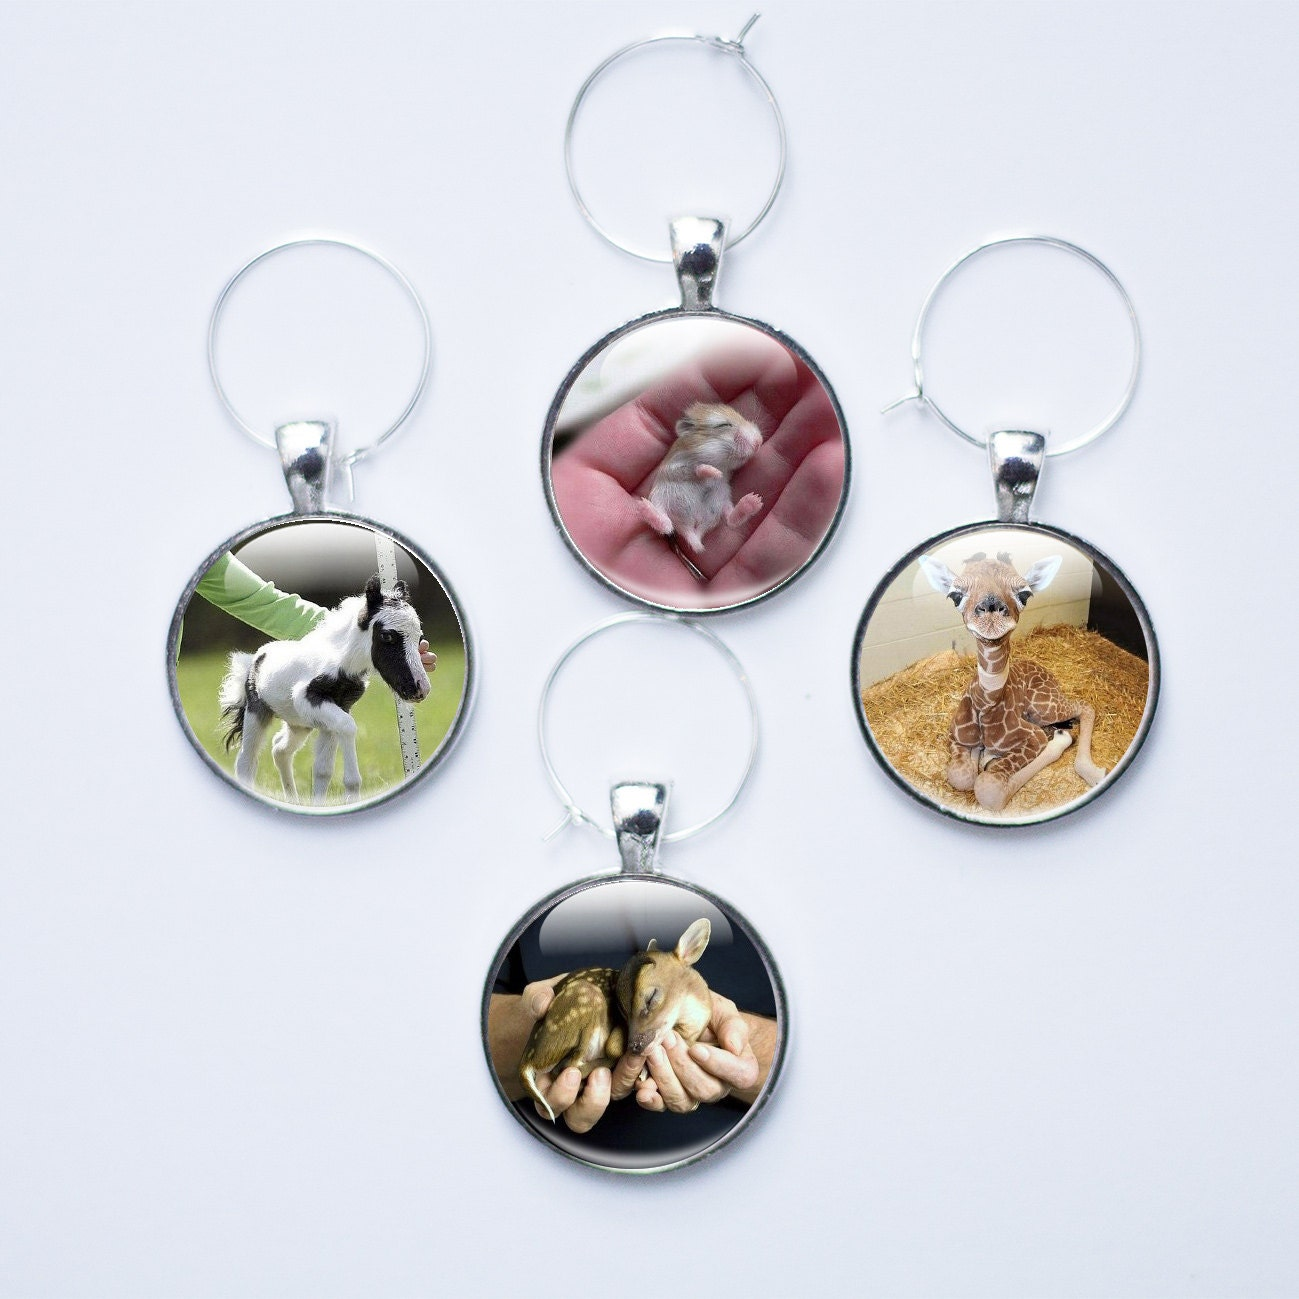 Pictures Of Charm Bracelets: Wine Charms Animal Wine Glass Charms Baby Animal Wine